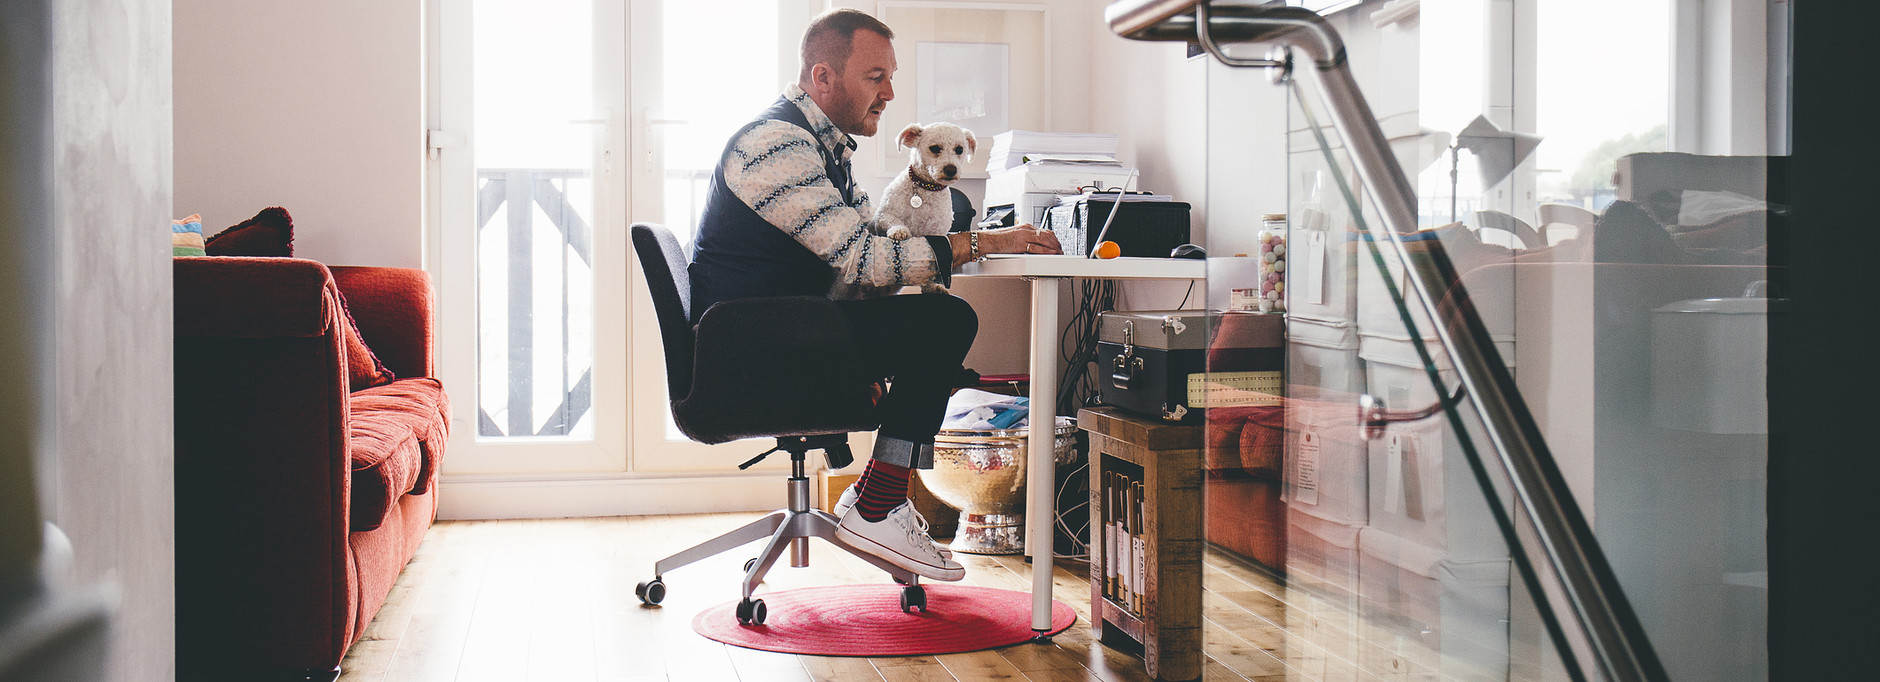 Work From Home - How Effective Website Design Can Help Small Businesses Navigate COVID-19